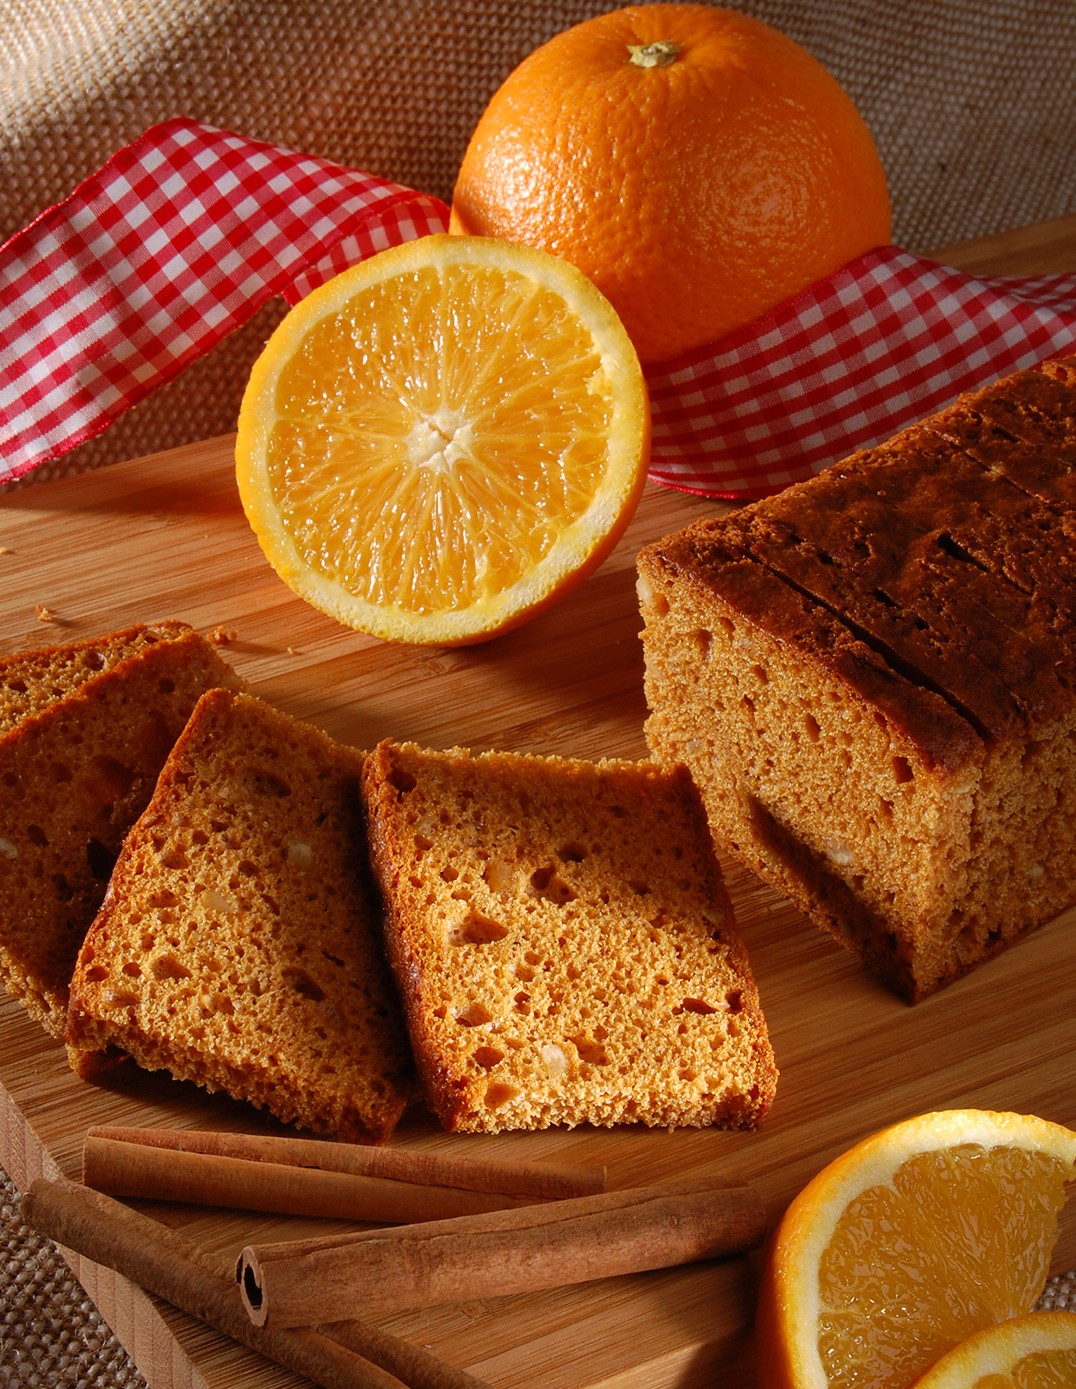 Gingerbread loaf with orange